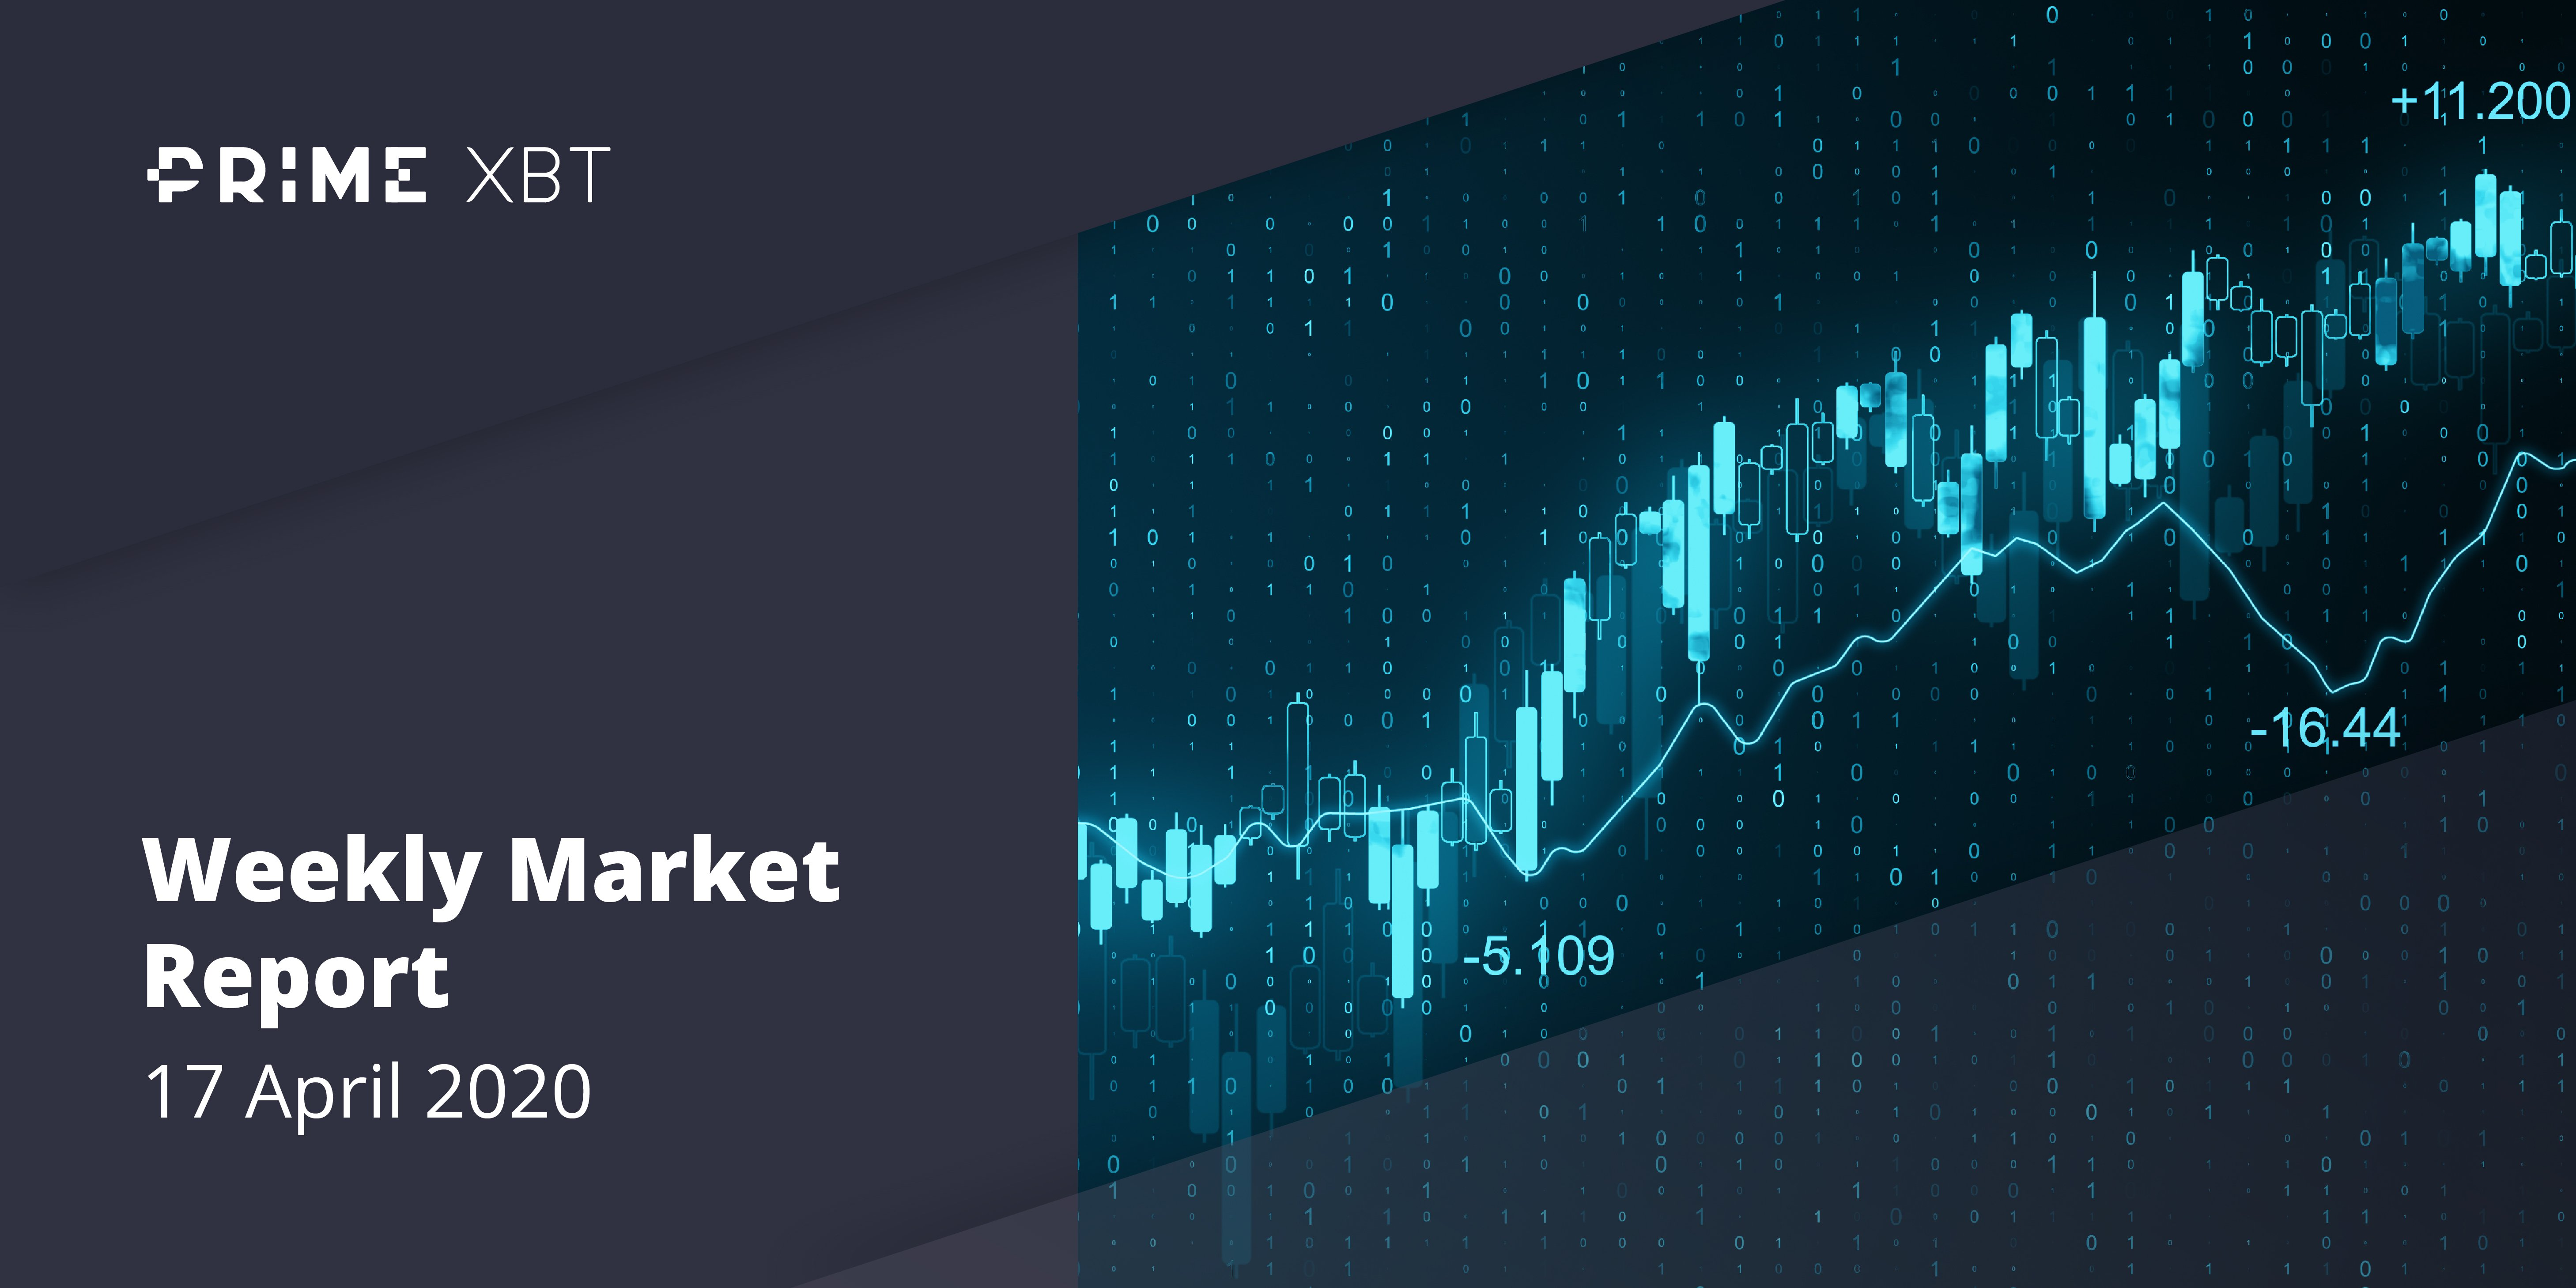 Crypto Market Report: Stimulus Checks Could Push Bitcoin Price Through Strong Resistance - 17.04.20